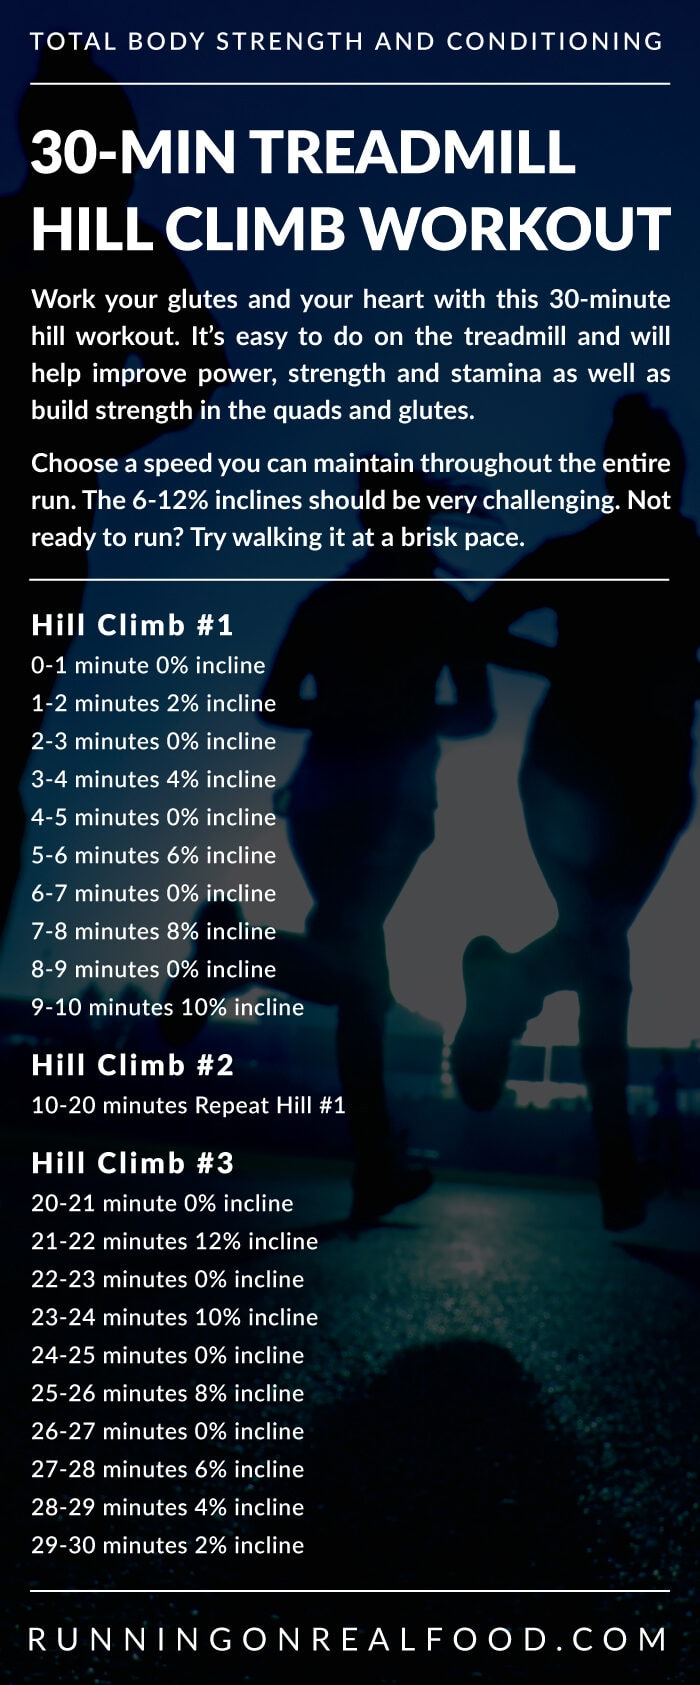 Instructions for a 30-minute hill climb workout.